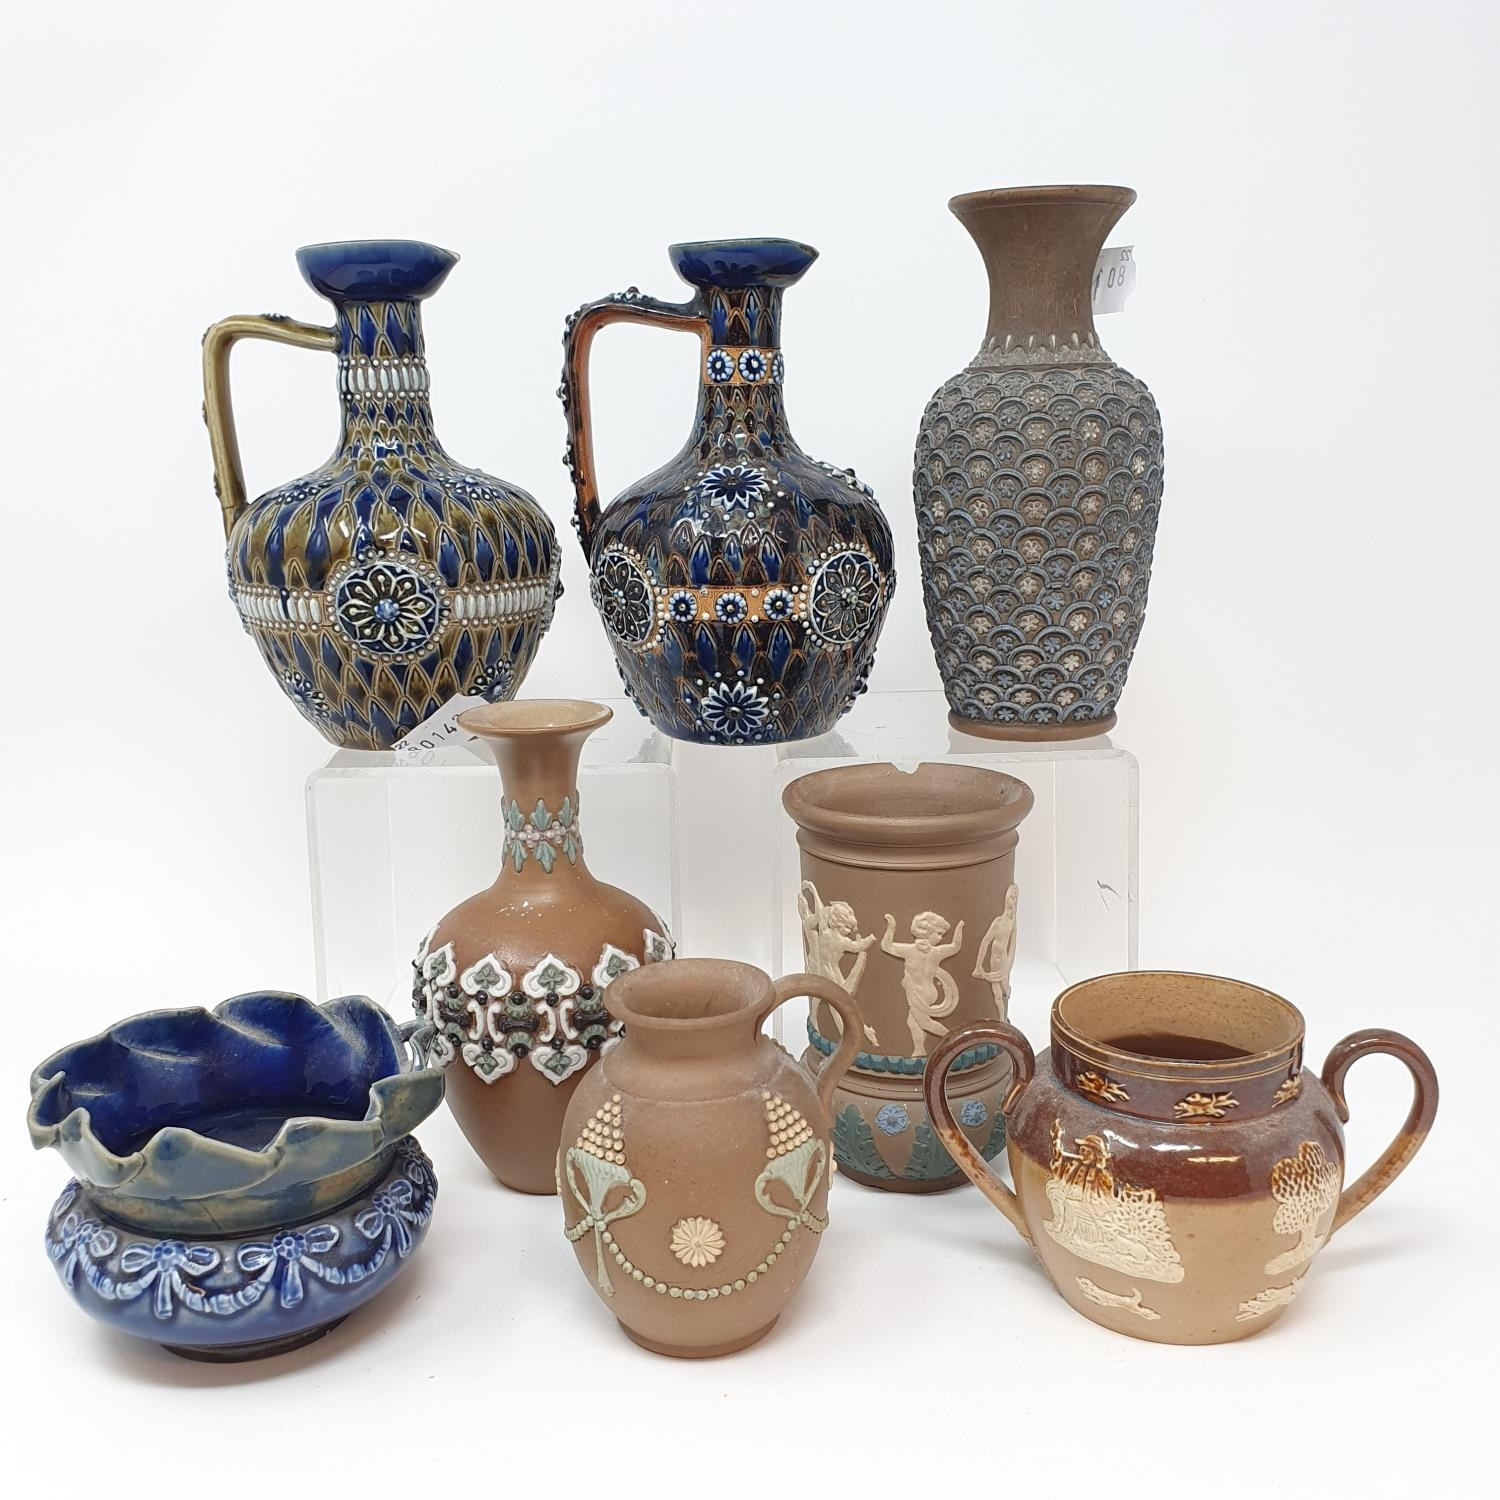 A pair of Doulton Lambeth jugs, 15 cm high, and six other items of Doulton (8) - Image 3 of 9